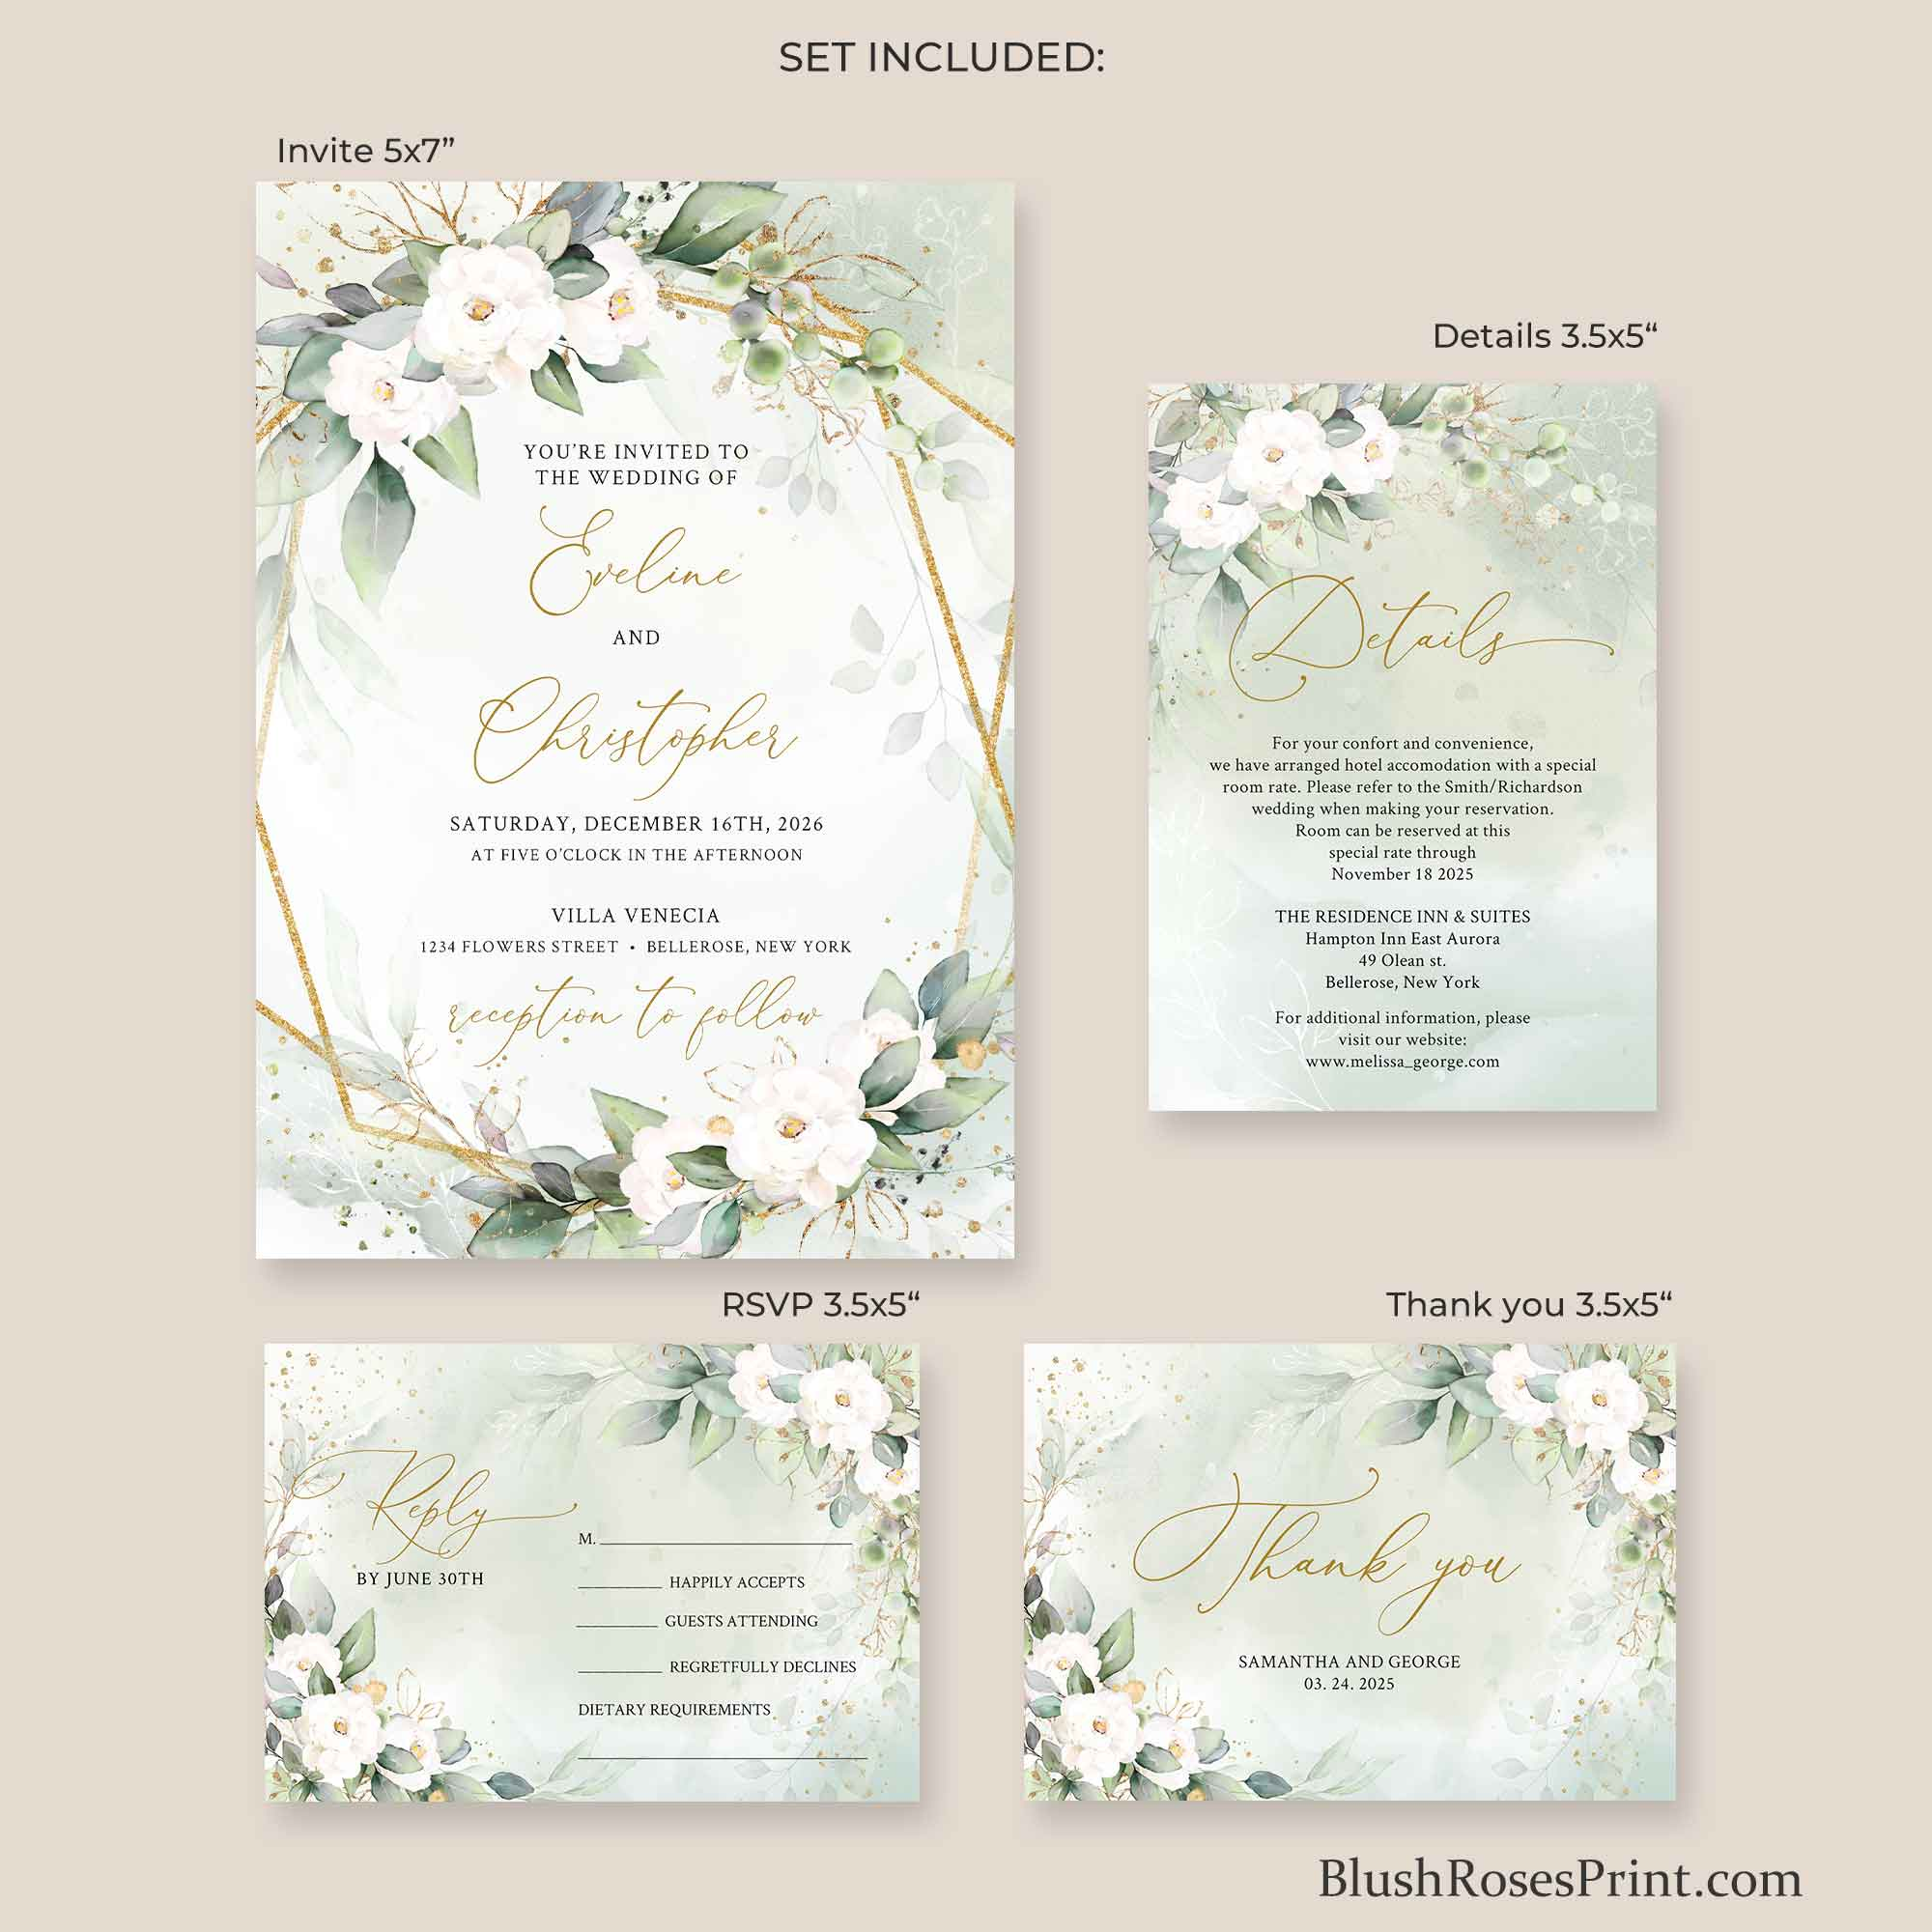 JOEY - Green and White Roses Wedding Suite, PRINTING or DIGITAL Wedding Set Greenery, Boho Green and Gold Invite, Gold Geometric Oval Frame